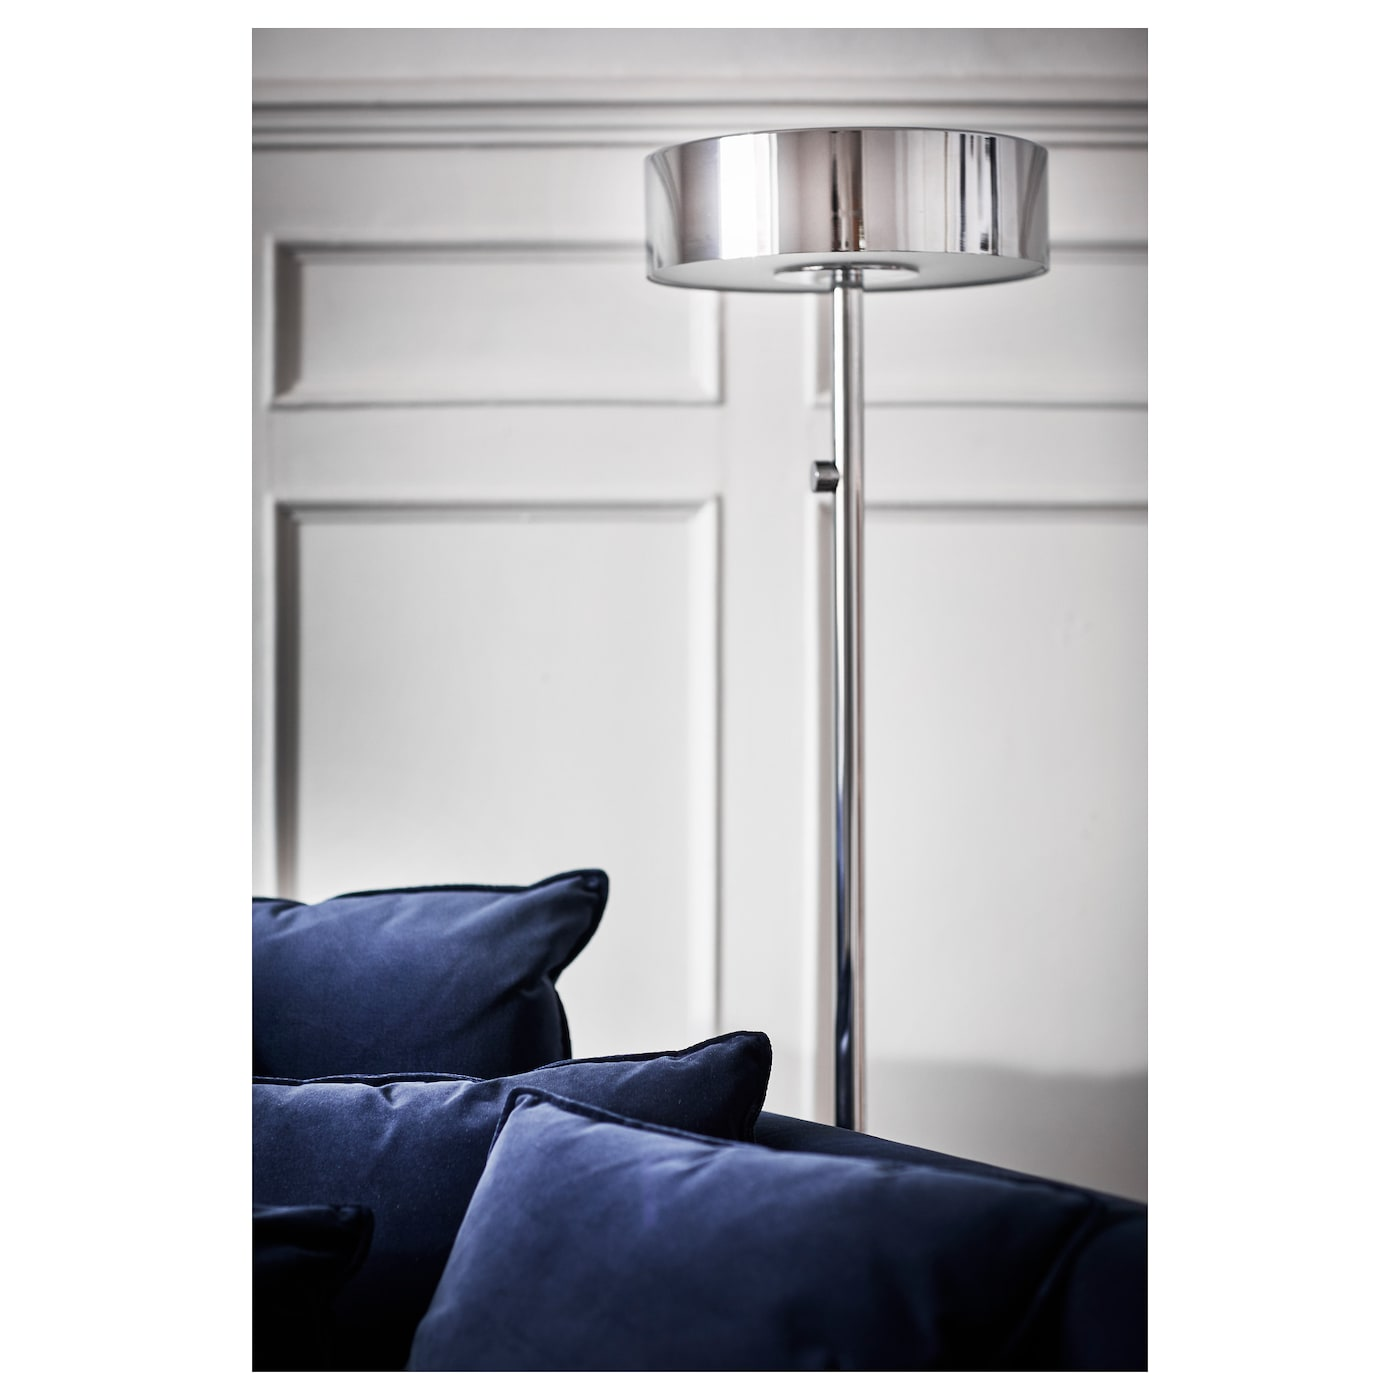 stand standing lights com chrome room comexchange for floors amazon chandelier with floor pole lamp info reading uplighter up green lamps tall indoor ft melbourne bulb living